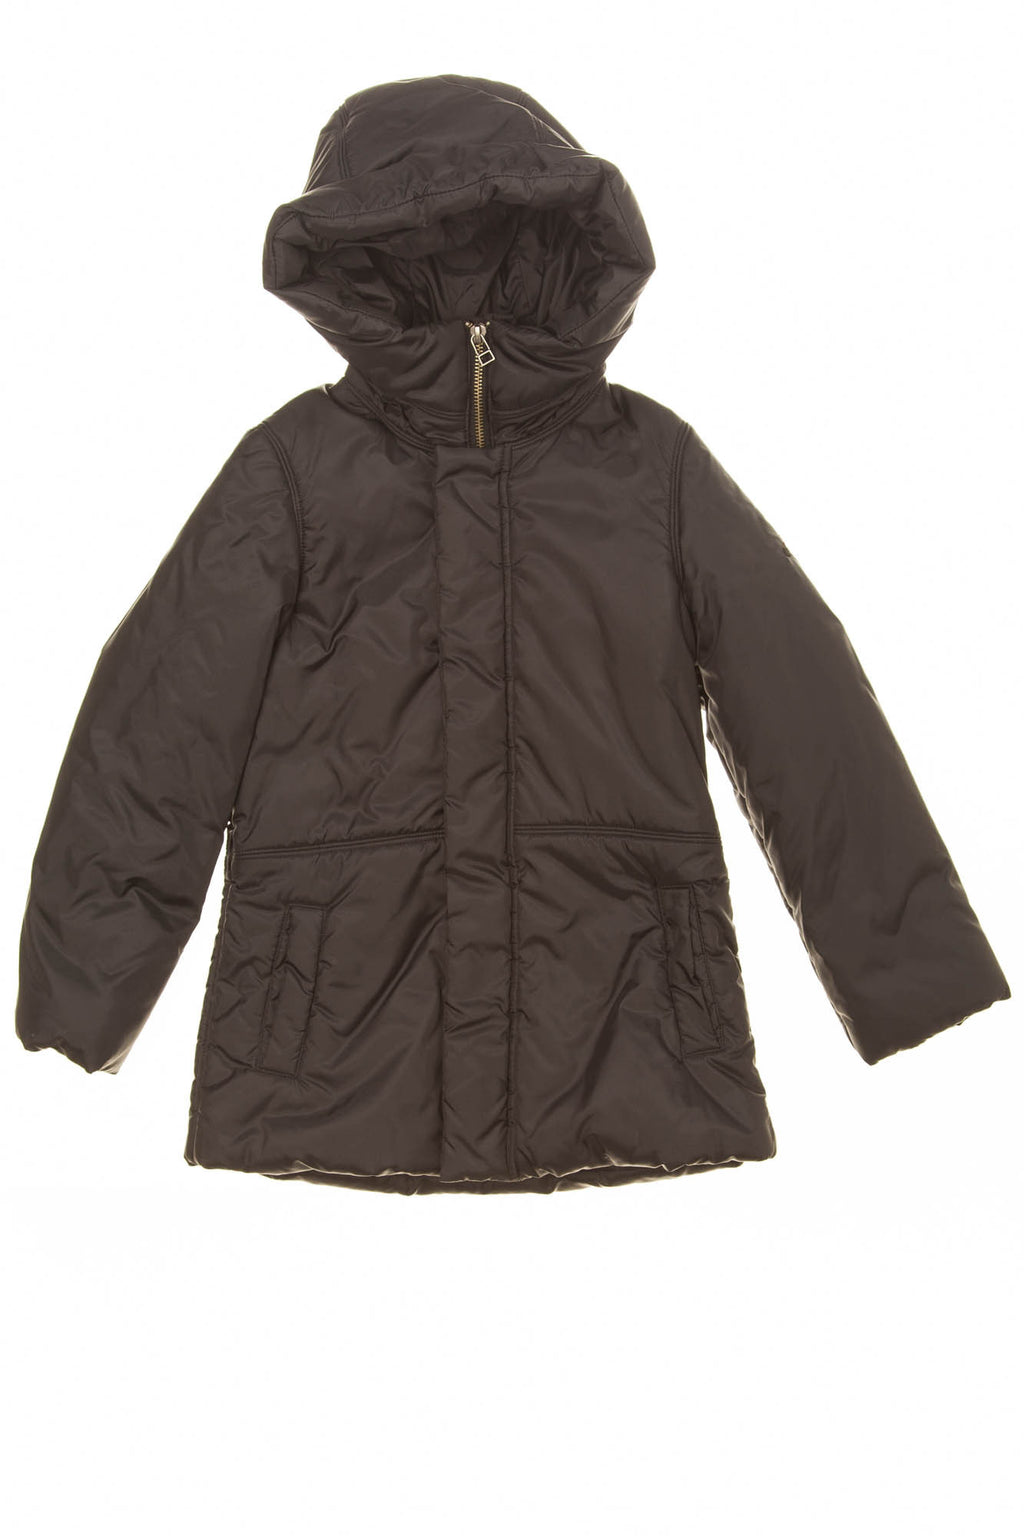 Junior Gaultier - Black Puffy Jacket - 8A